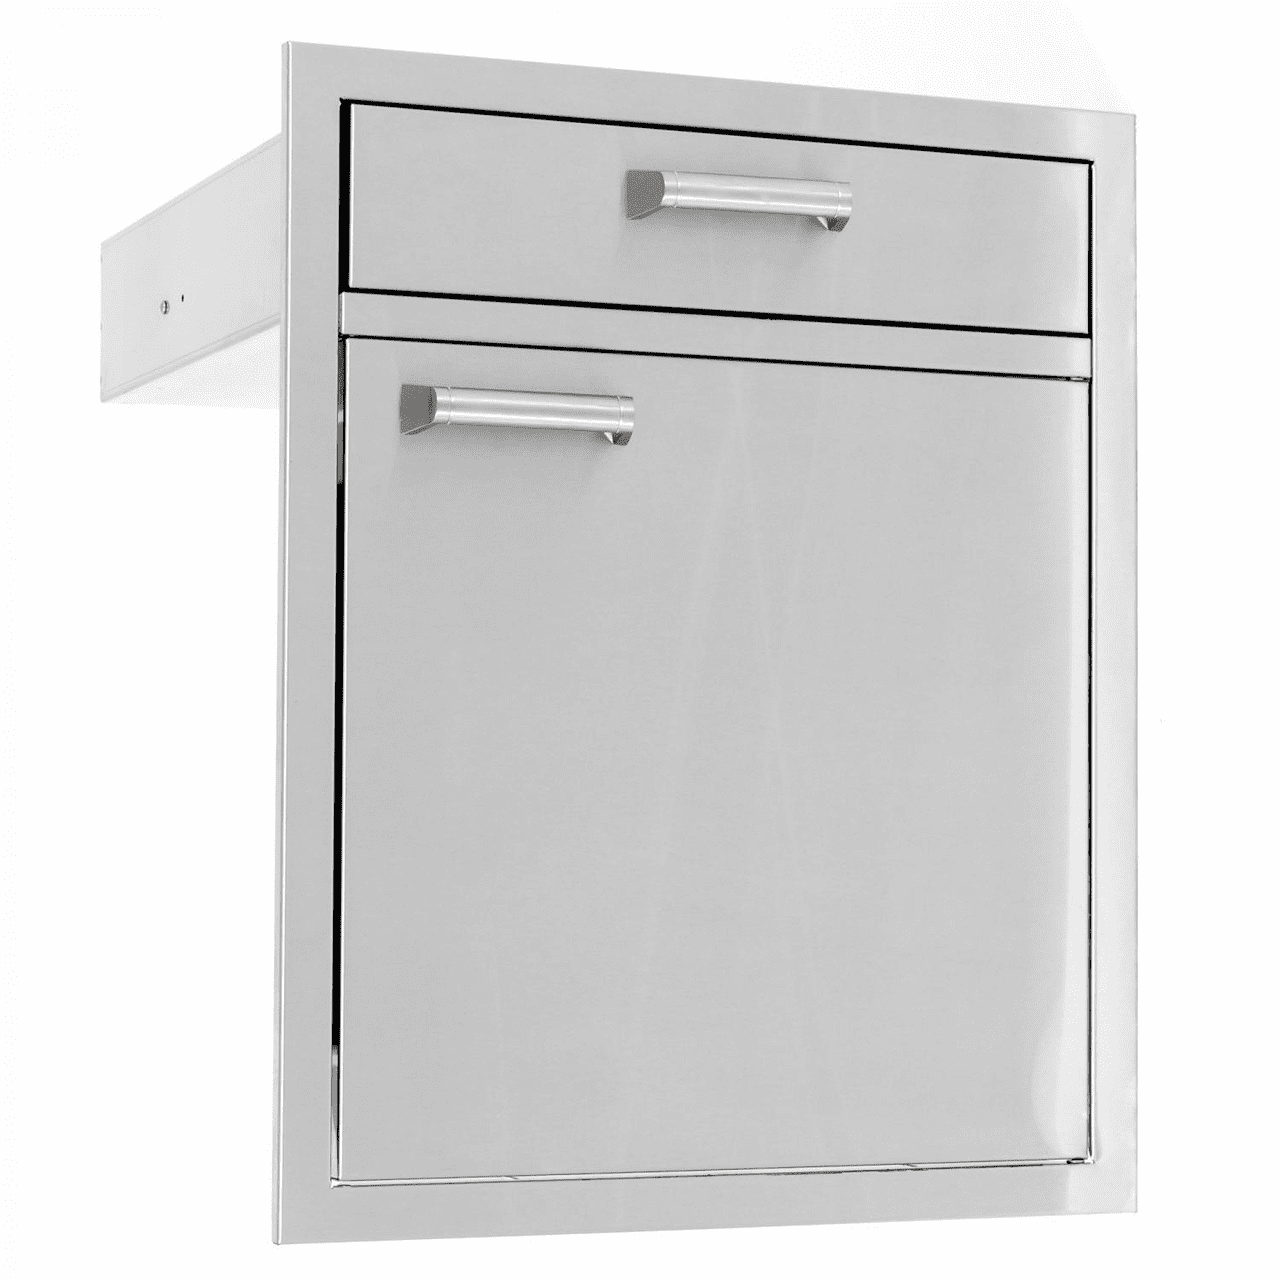 PCM 350H 1 Door 1 Drawer Combo SDHDR21 stainless steel